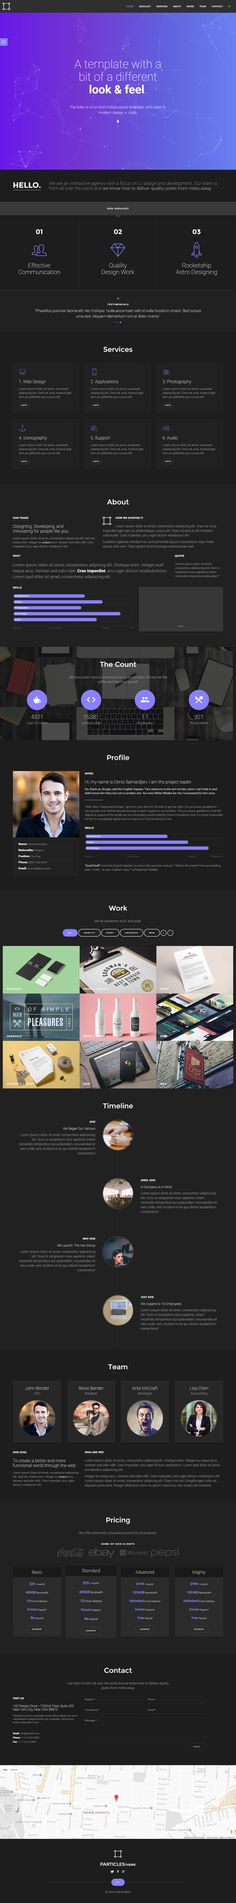 """'Particles' is a One Page HTML template suited for a personal or digital agency portfolio. The template comes in a dark and light color scheme as well 8 link color options. Other features include their branded """"particle"""" background effect, portfolio with category filter and pop-up image gallery, parallax scrolling backgrounds, history timeline, pricing table and contact form."""